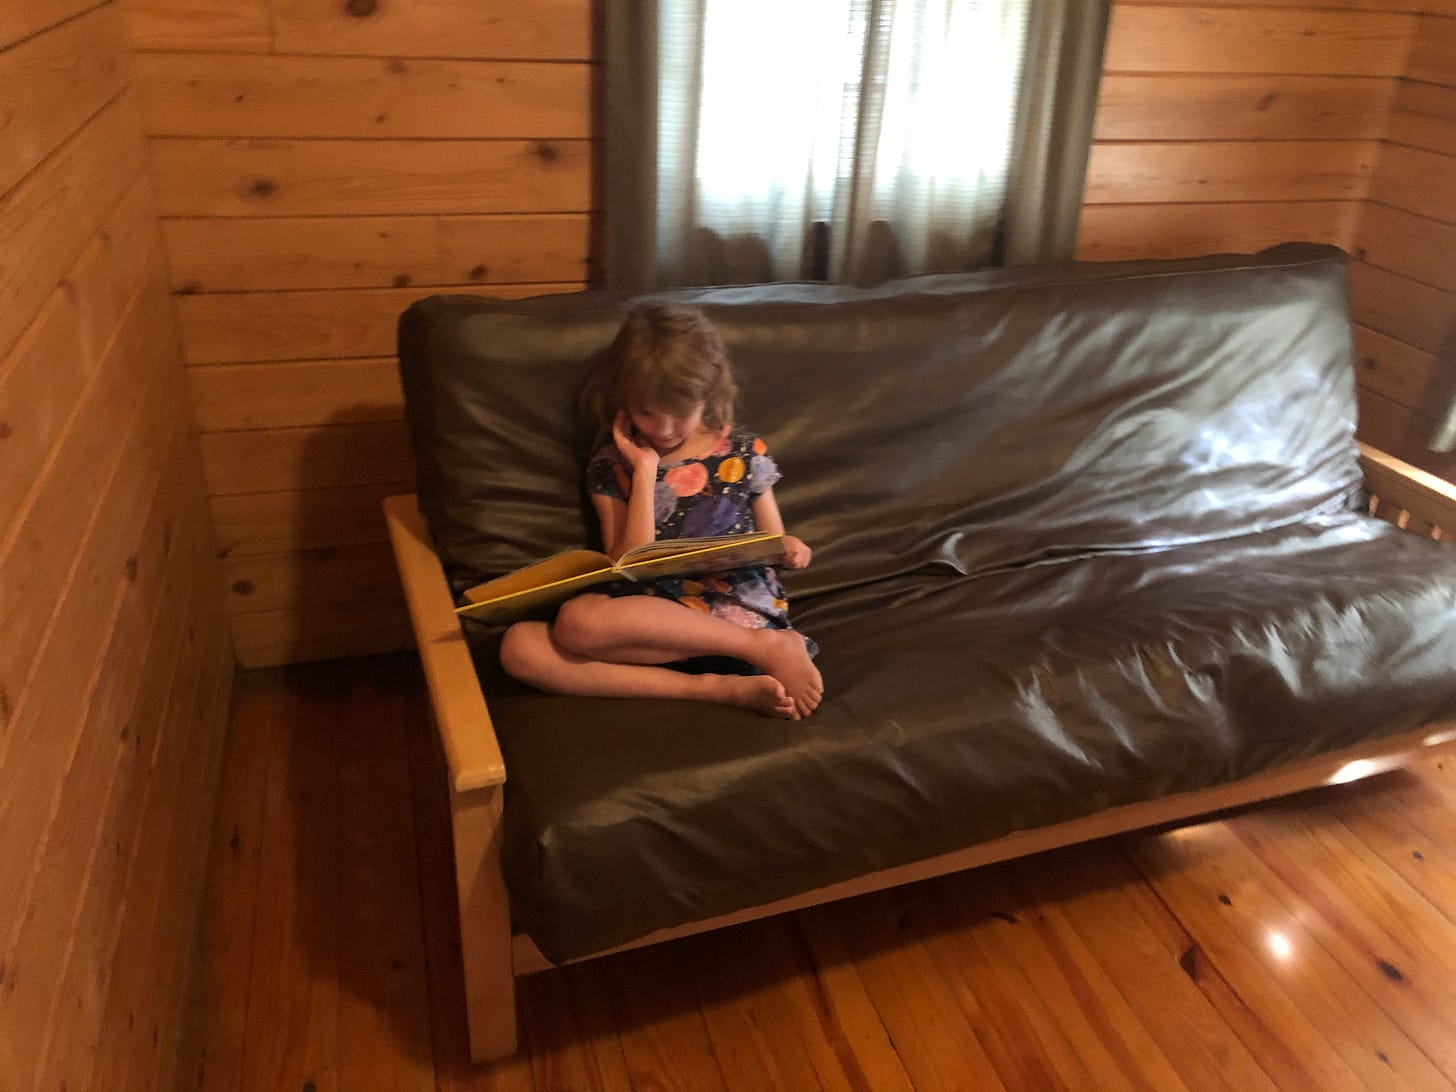 A girl sits on a futon in a pinewood cabin, reading.